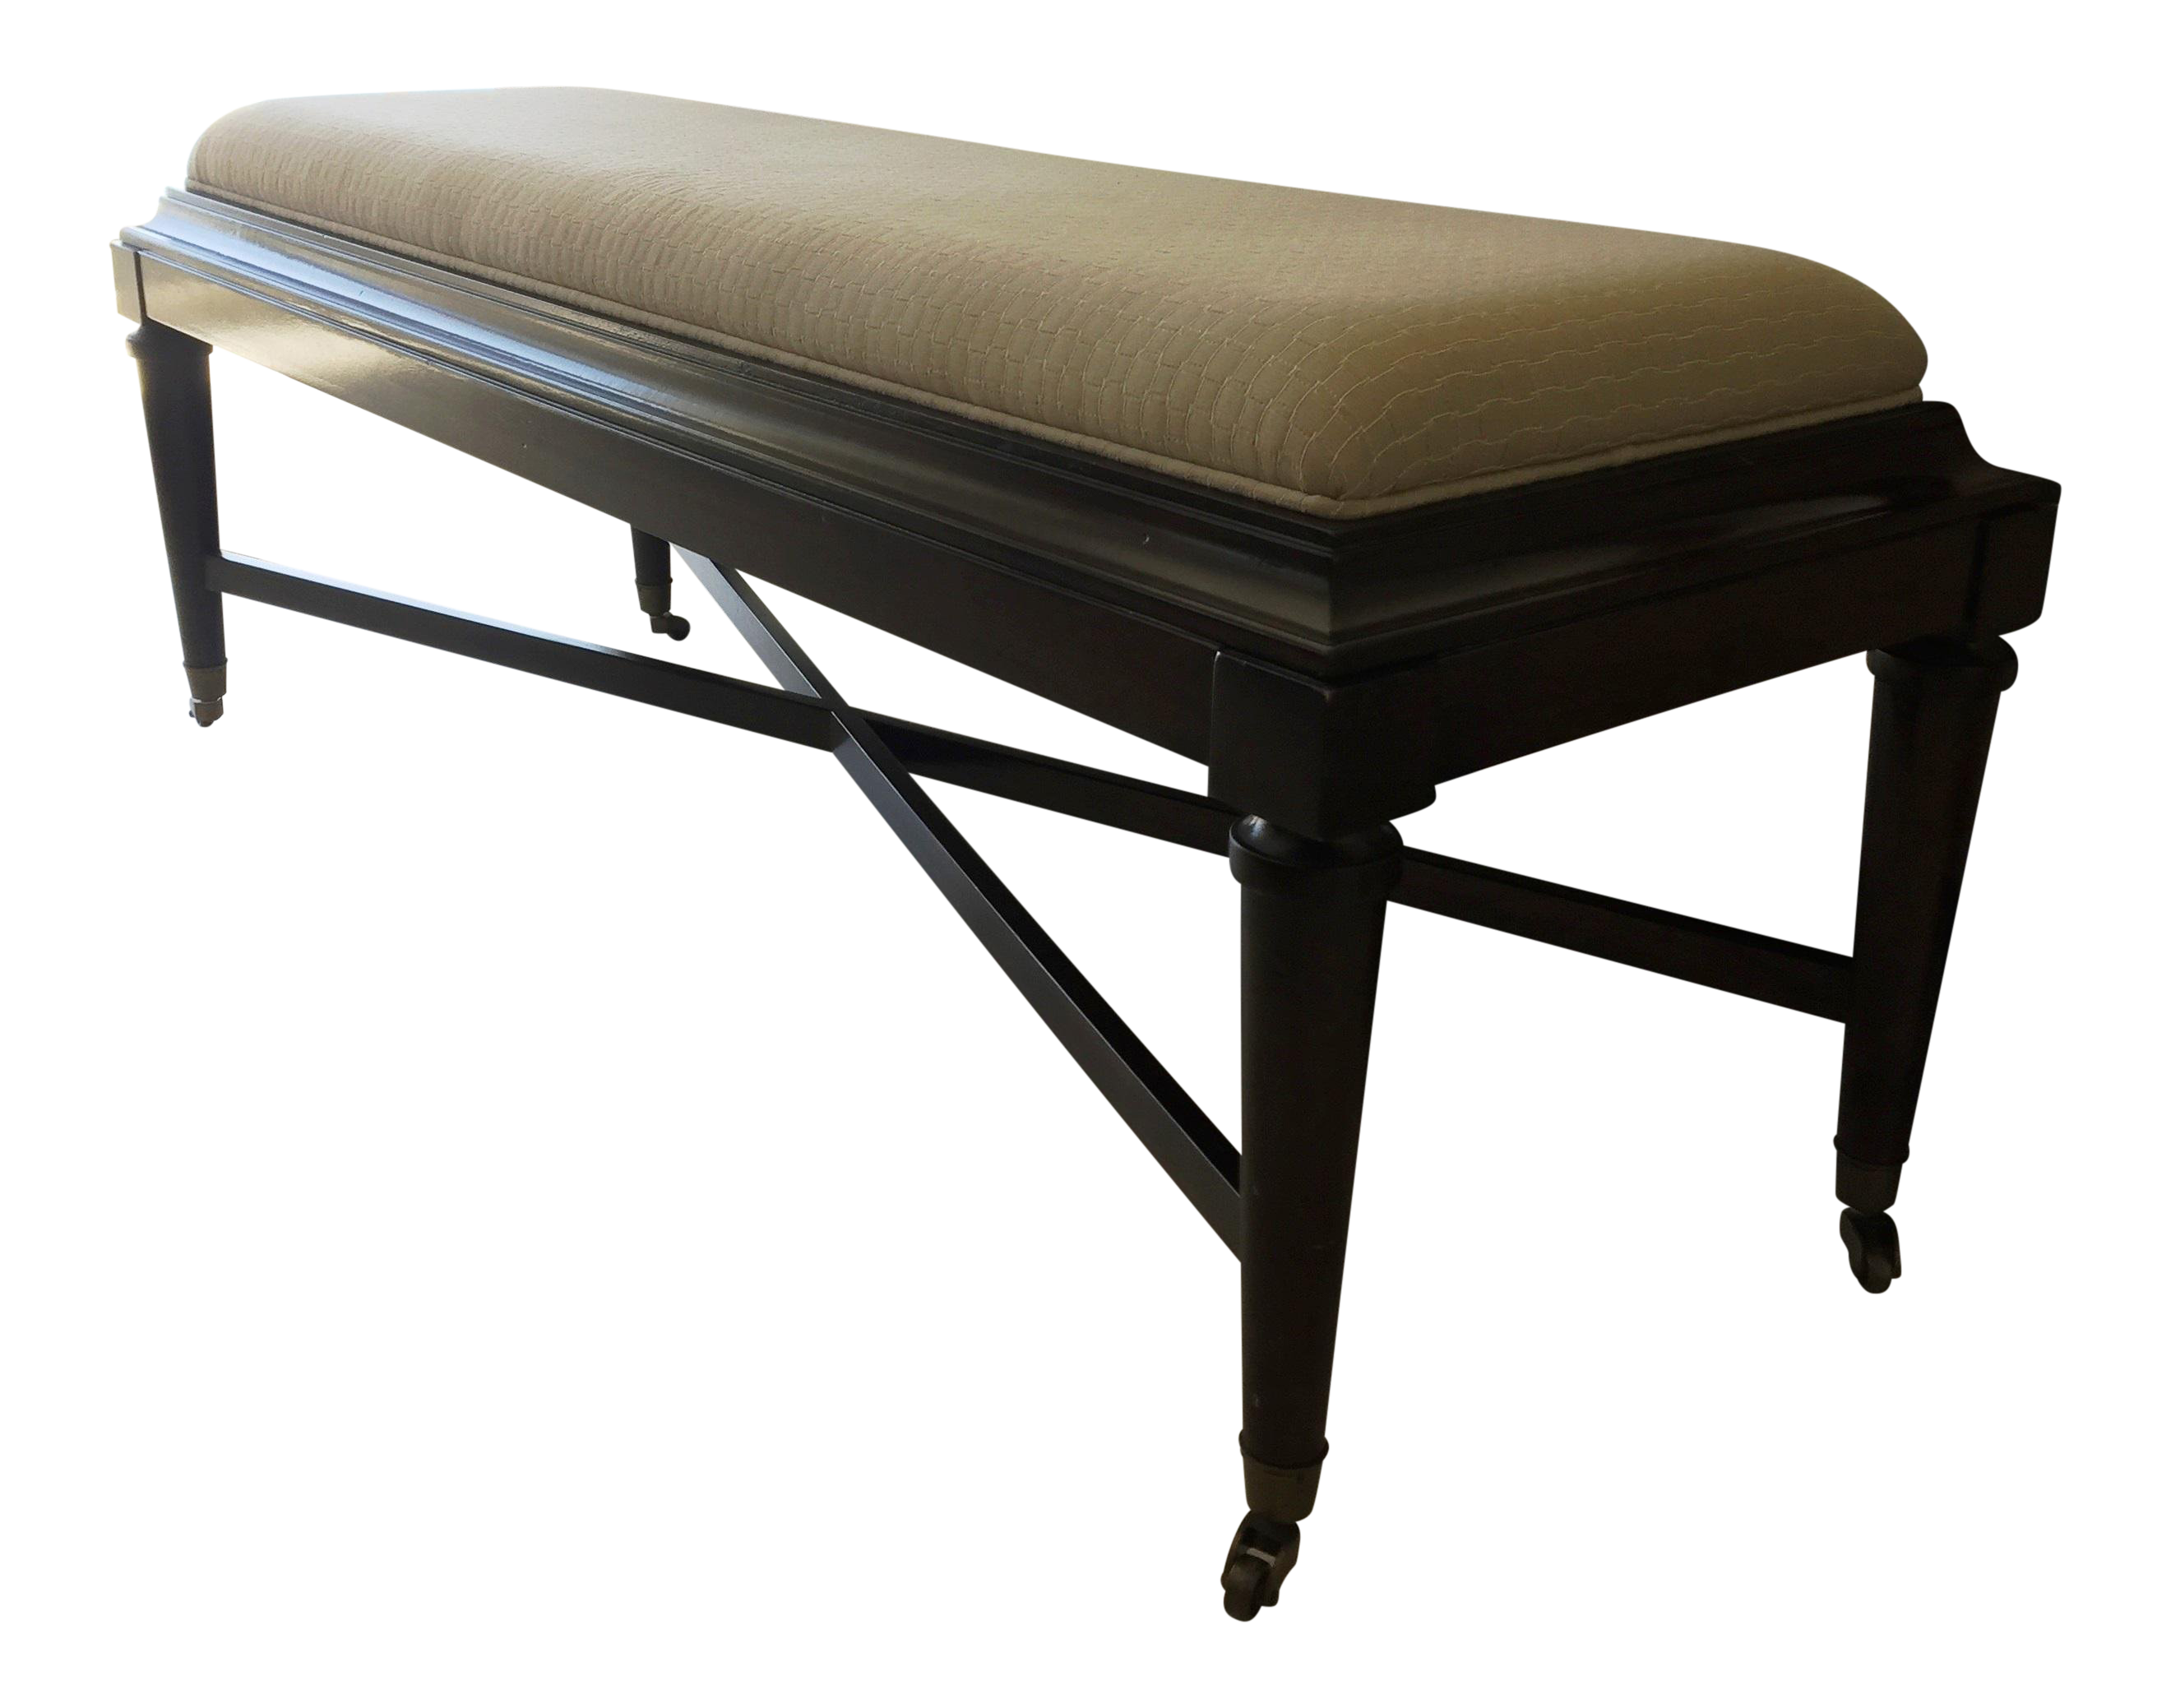 Stanley furniture avalon heights nash bed end bench with casters chairish